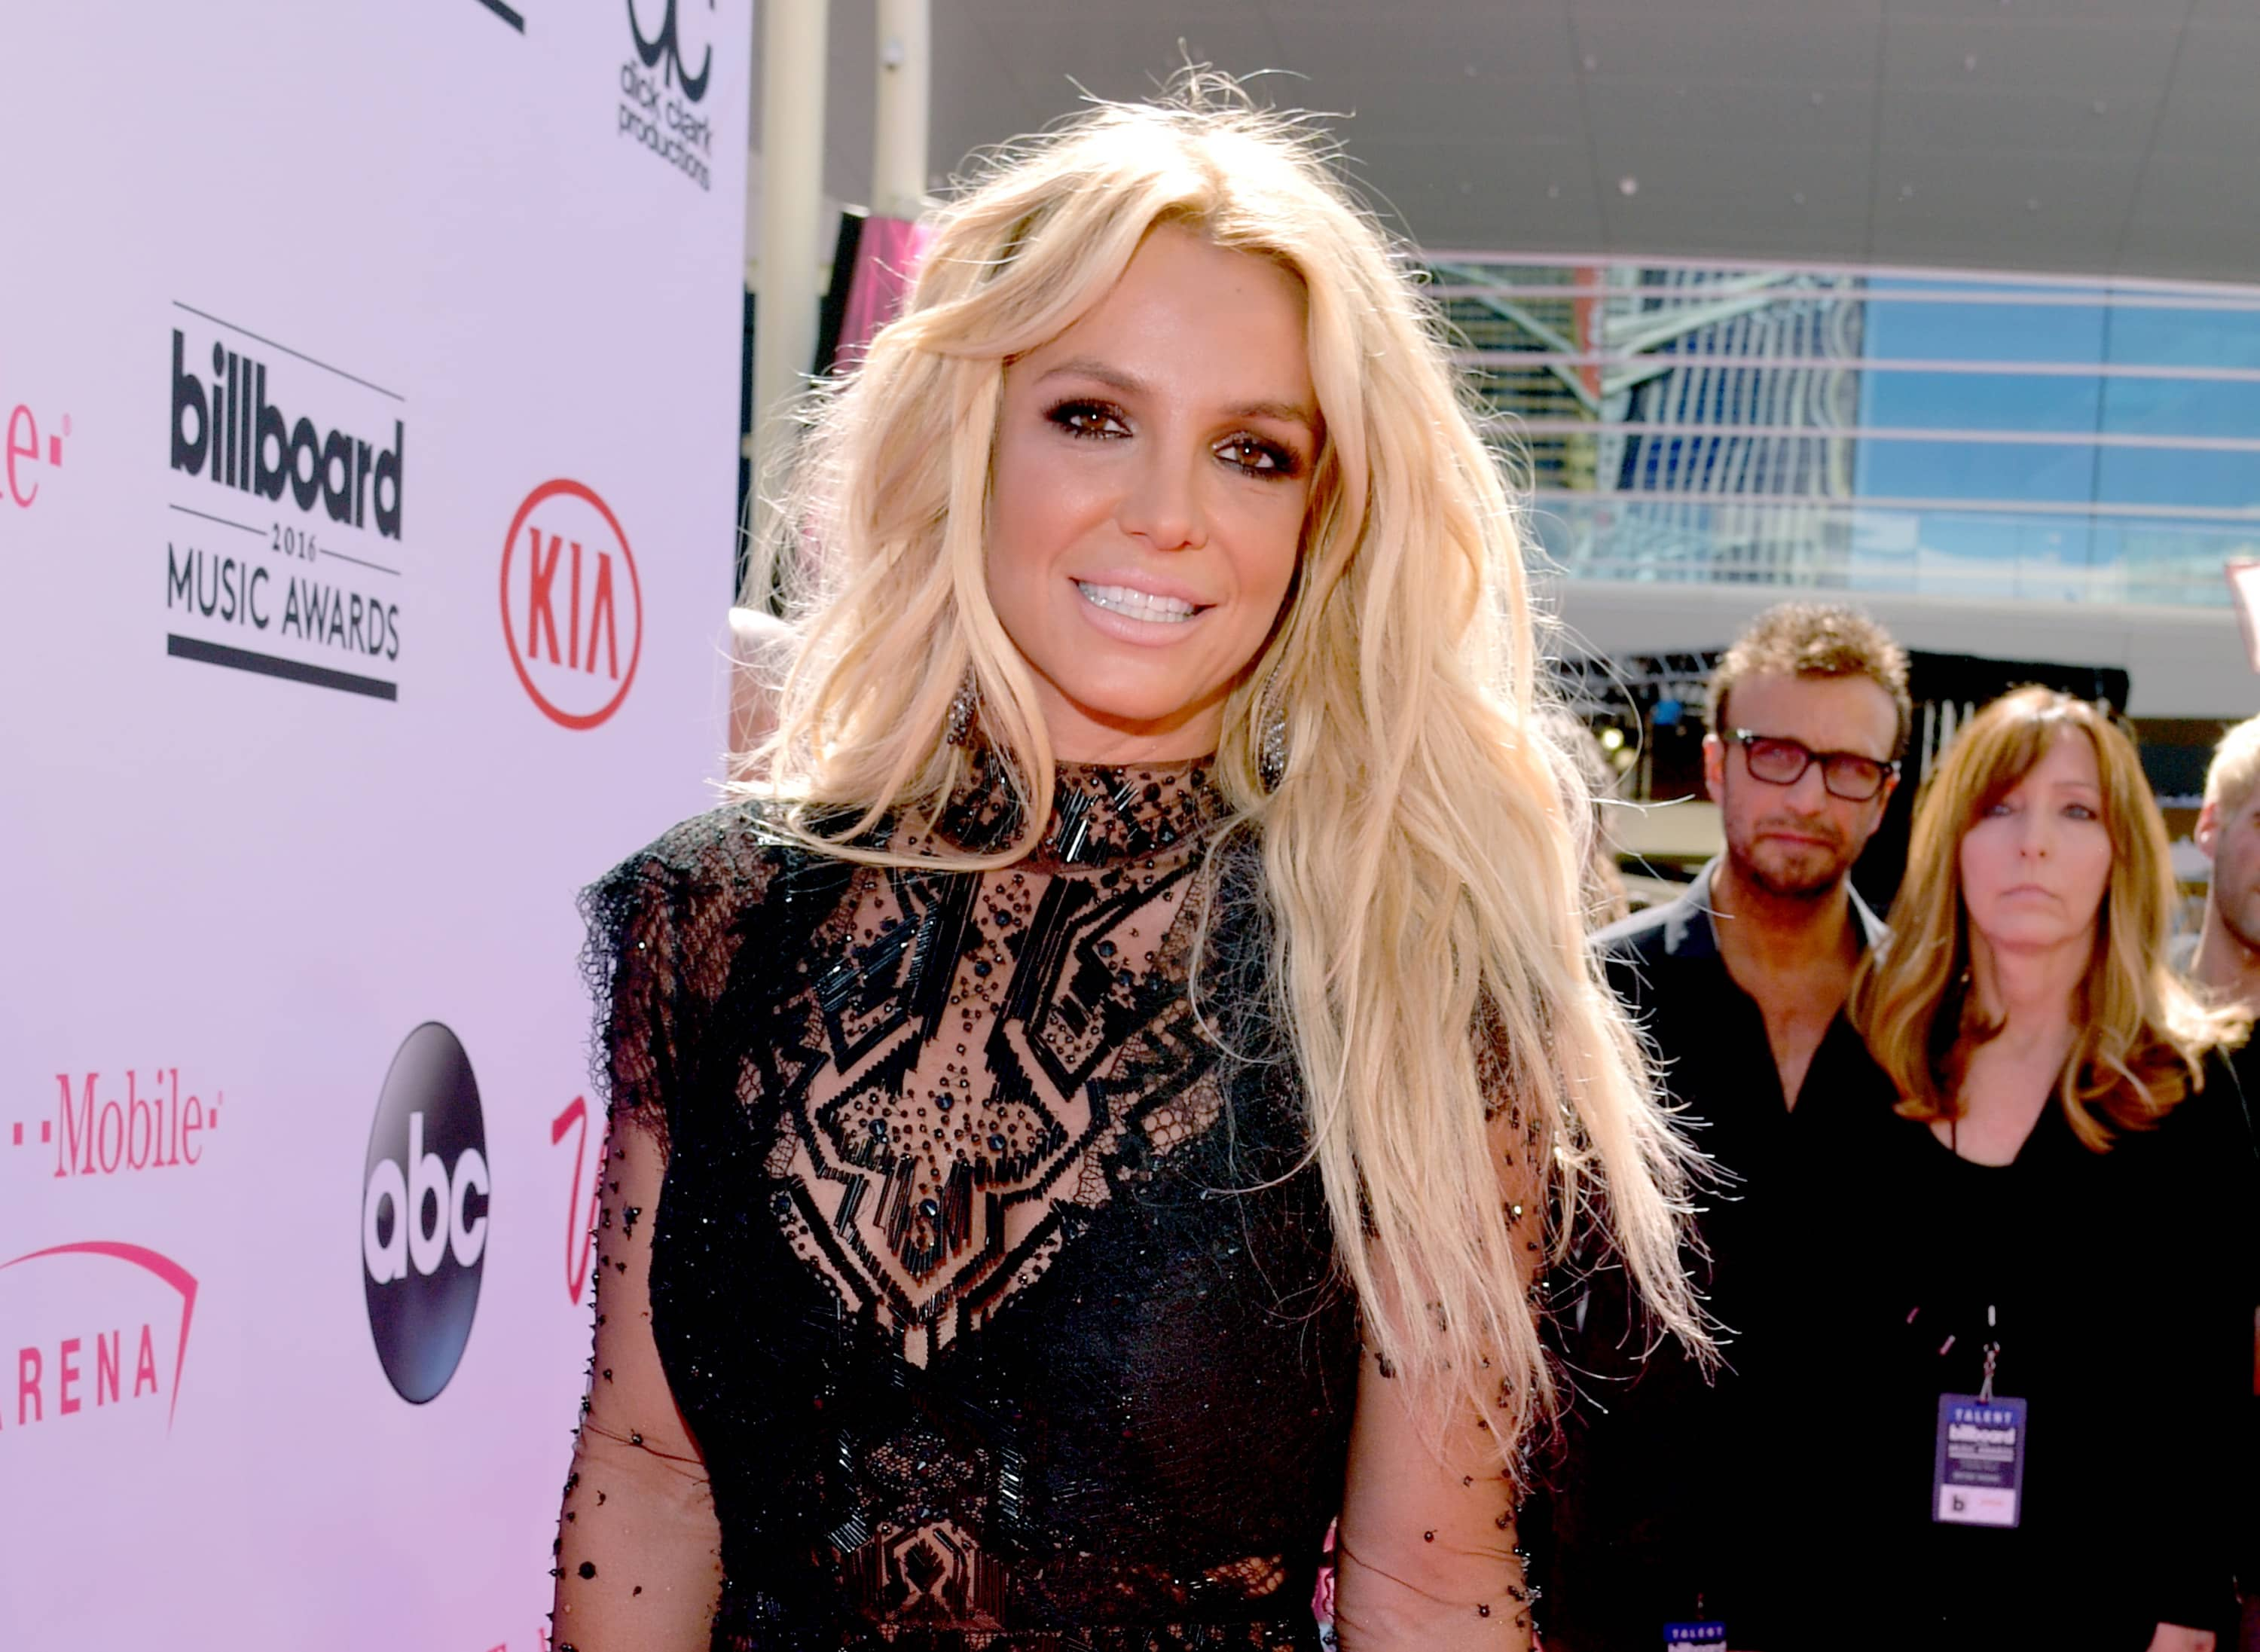 Britney Spears' attorney petitions to have a CPA replace James Spears in conservatorship